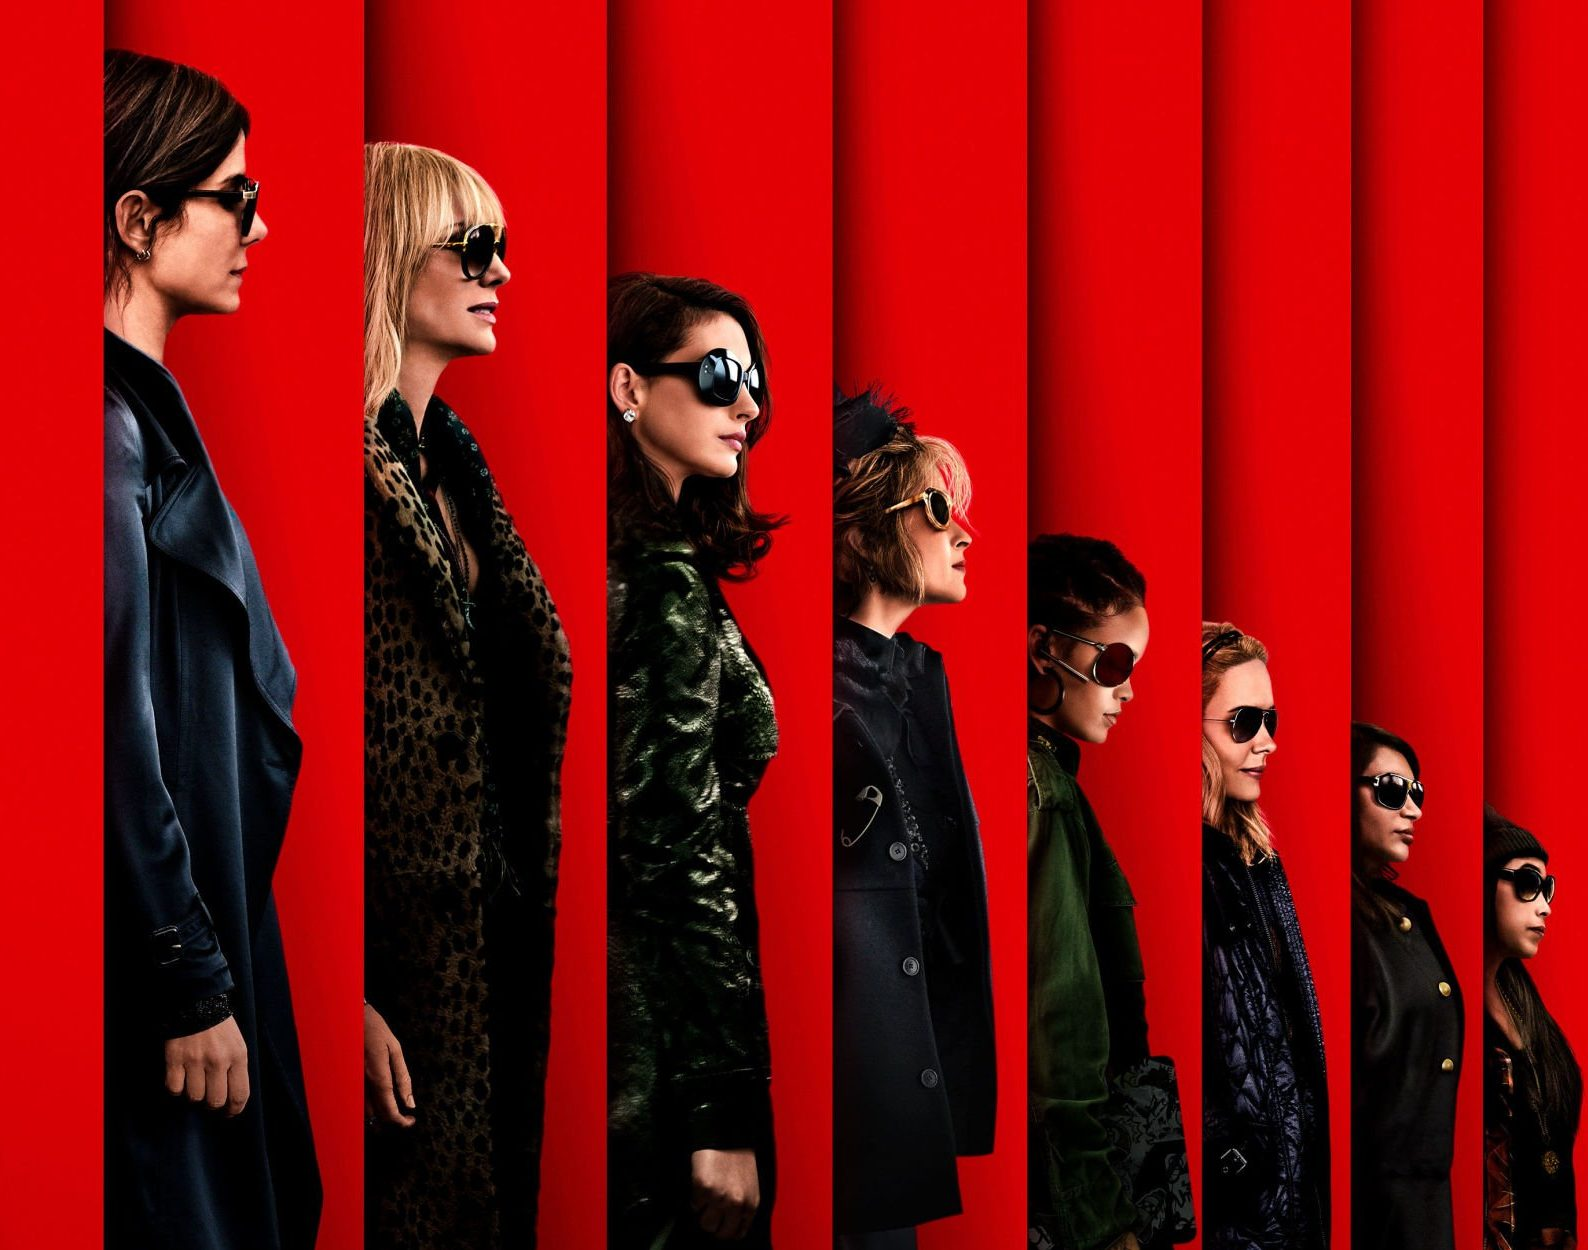 Here's the first look at the Oceans 8 poster featuring an all-female cast led by Sandra Bullock